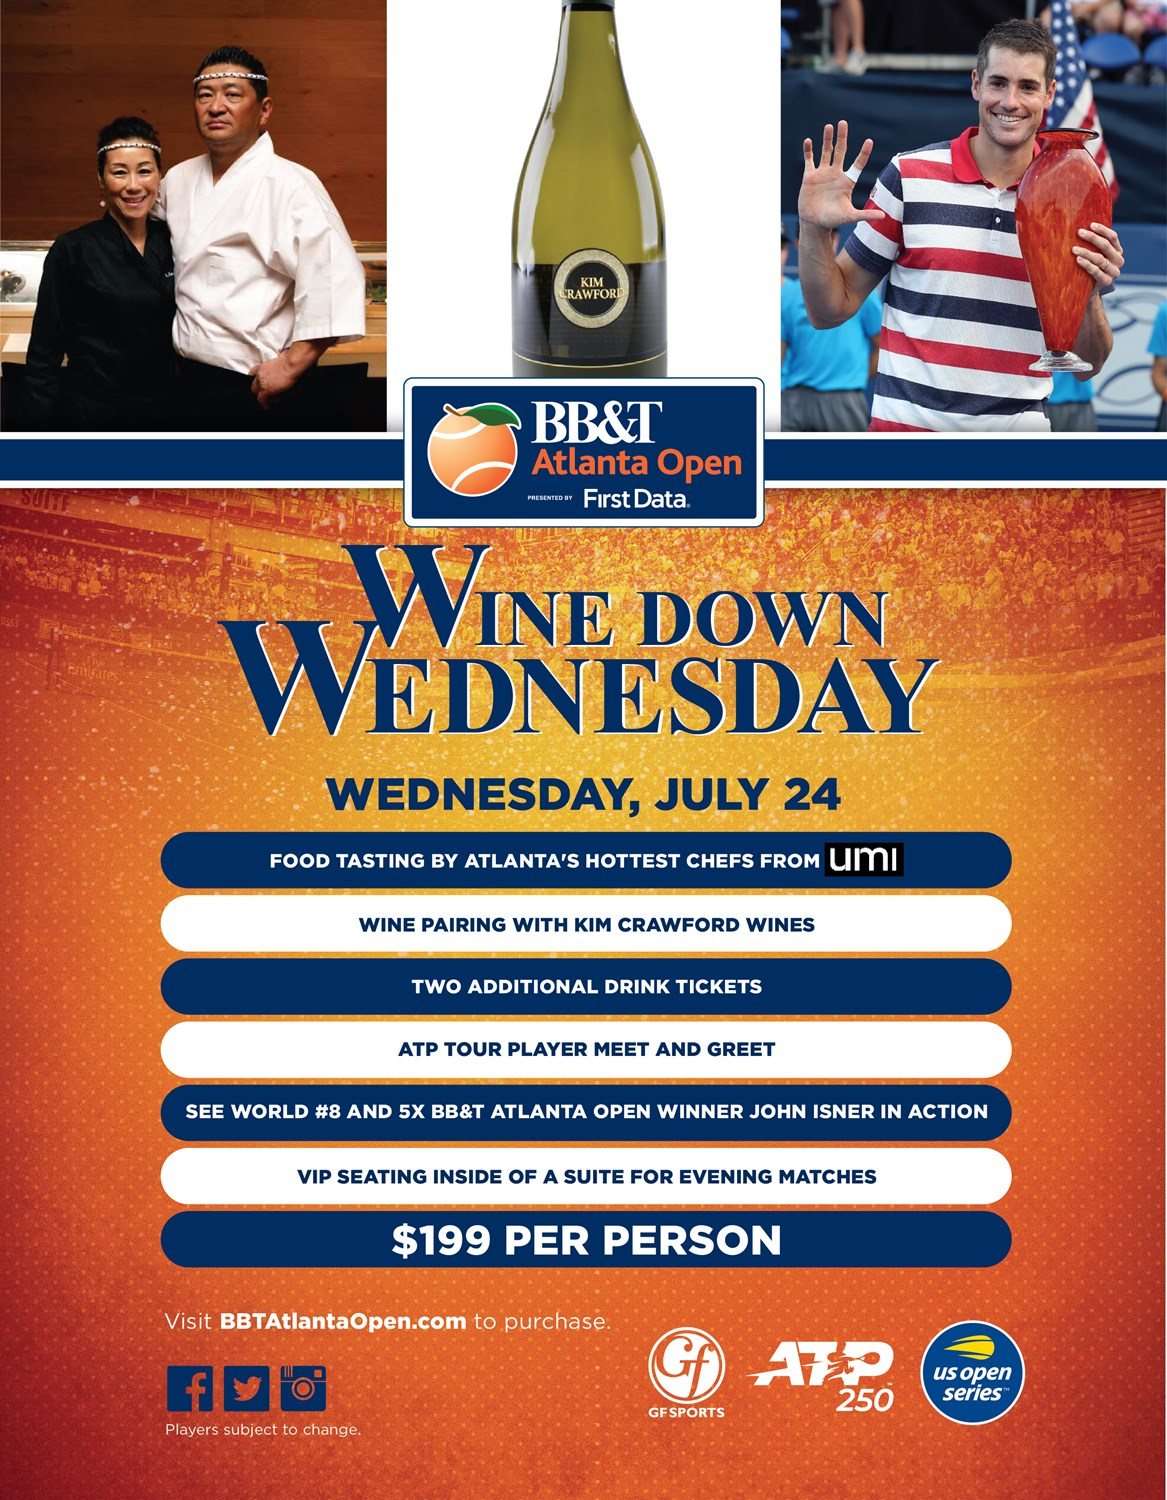 WineDownWednesday_Flyer-01